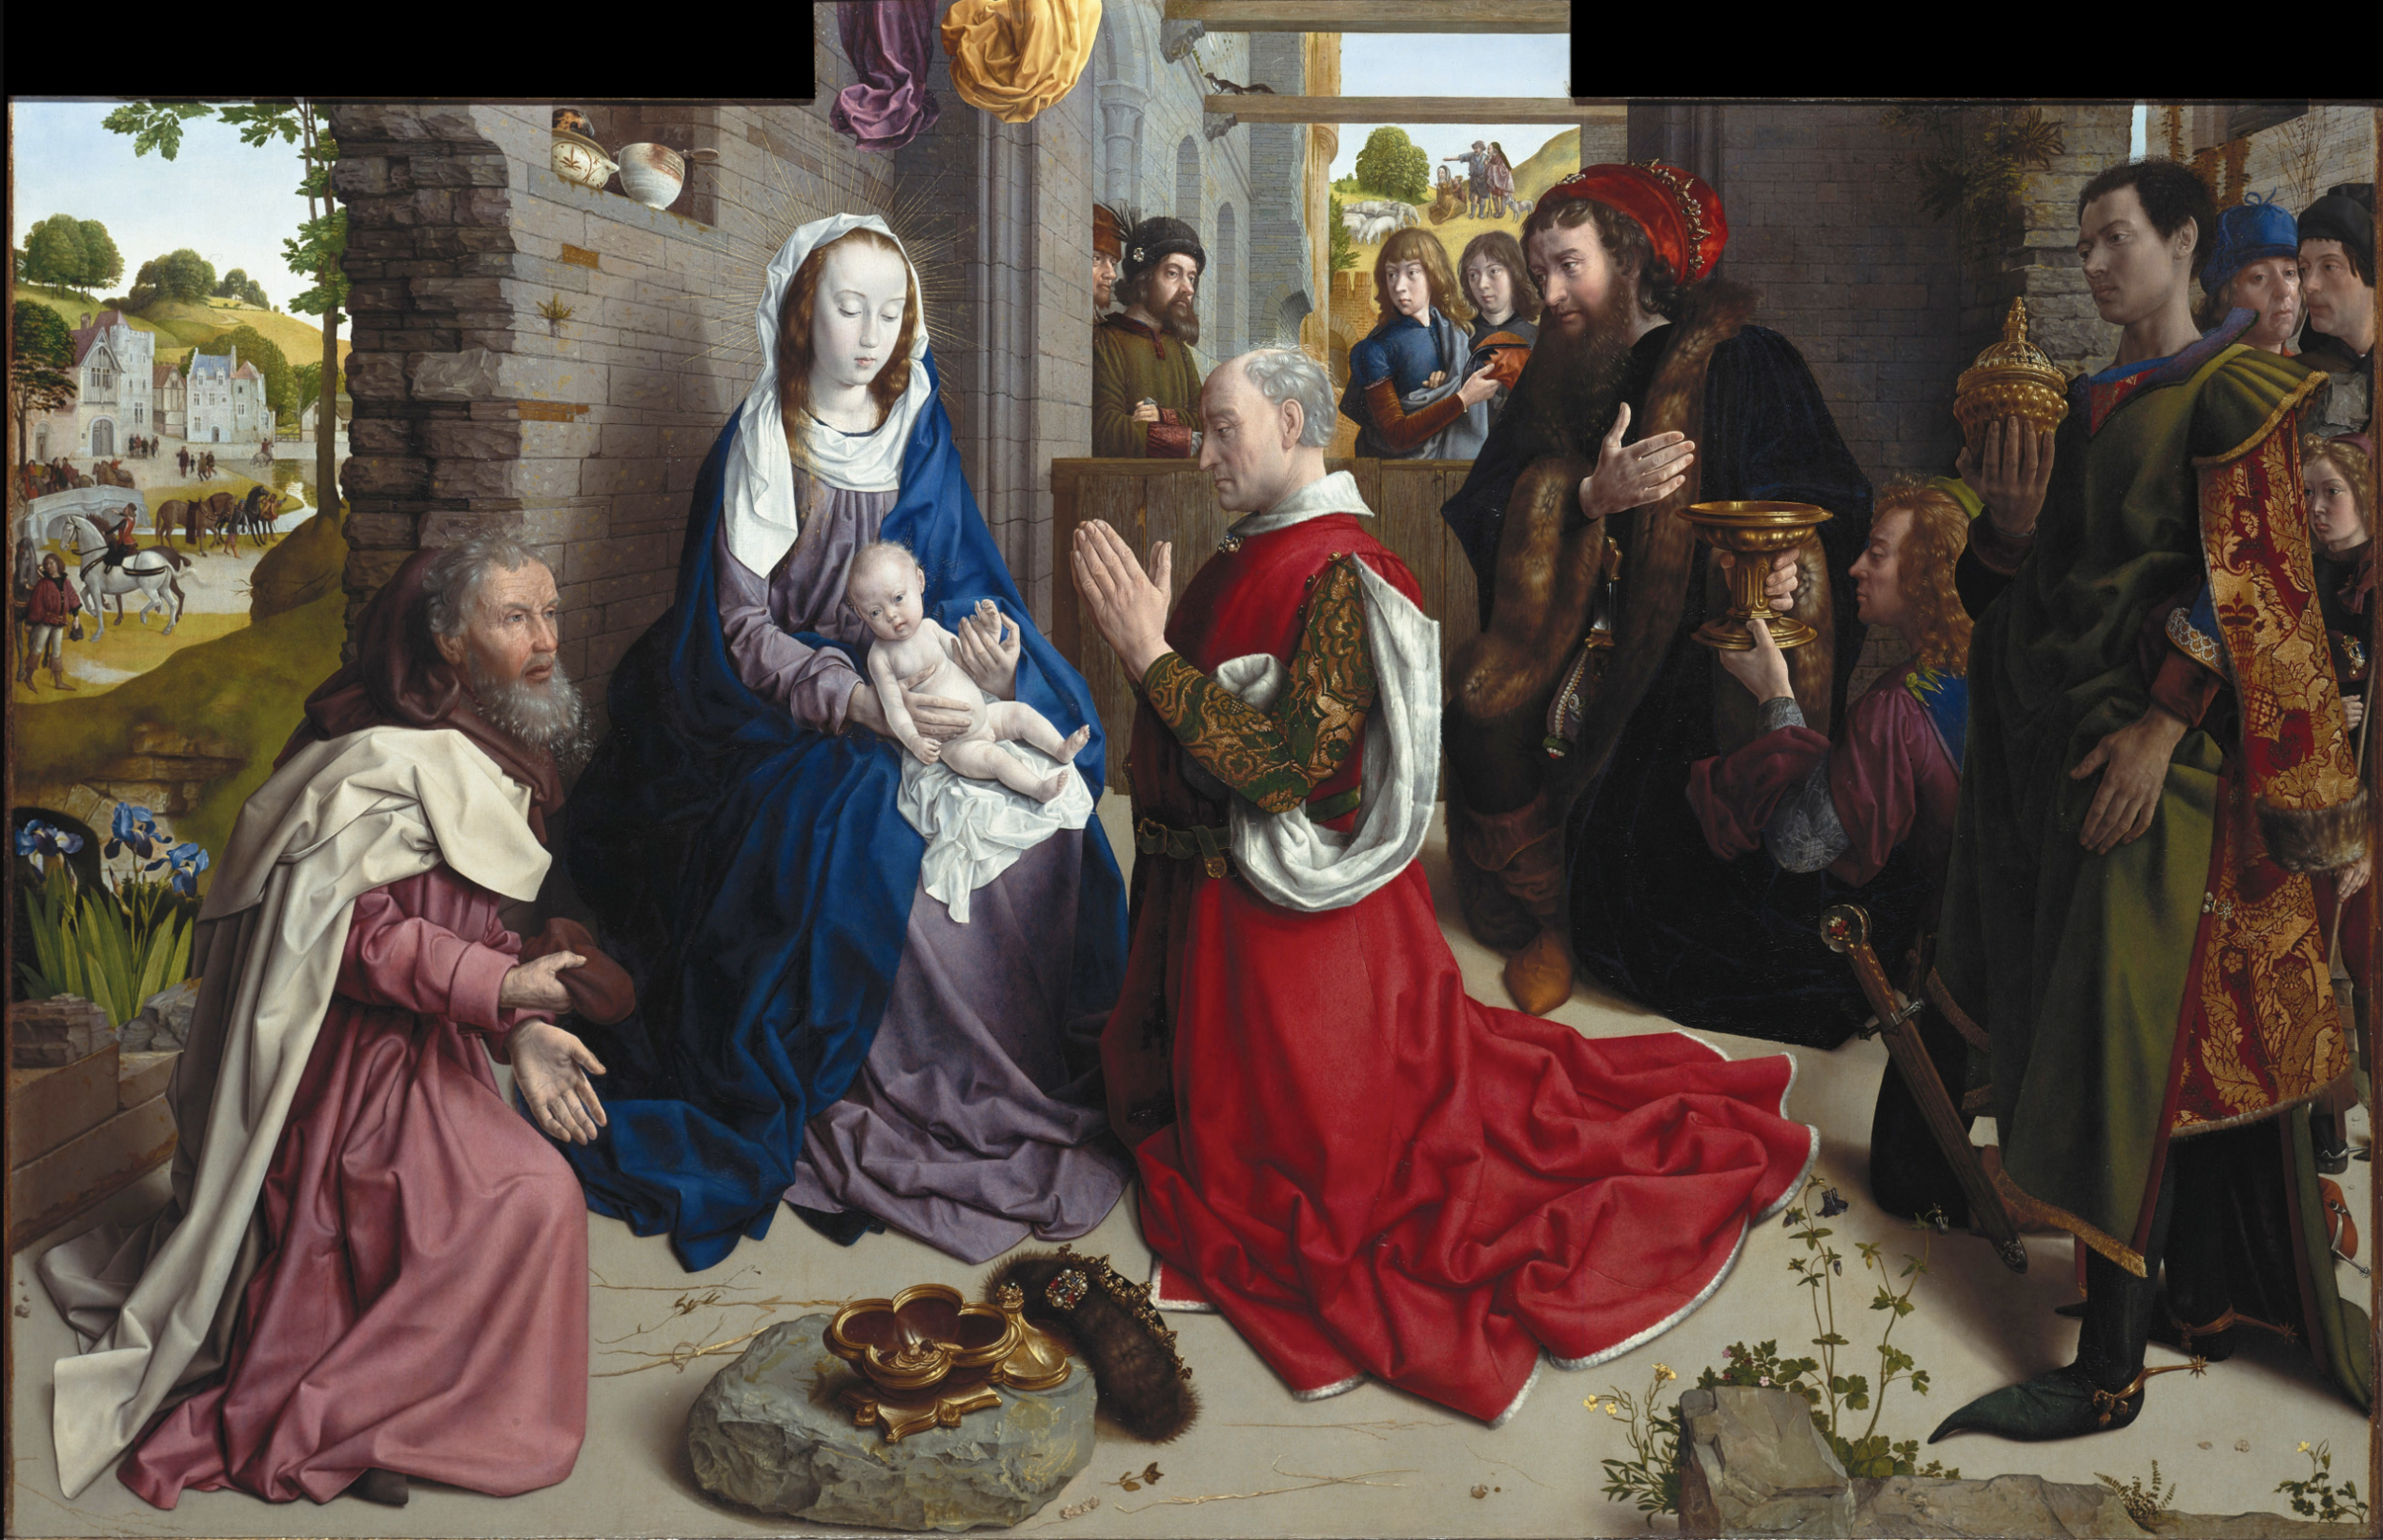 "Hugo van der Goes- The Monforte Altarpiece, c. 1470, oil on wood, 58x95"", Gemäldegalerie, Berlin"